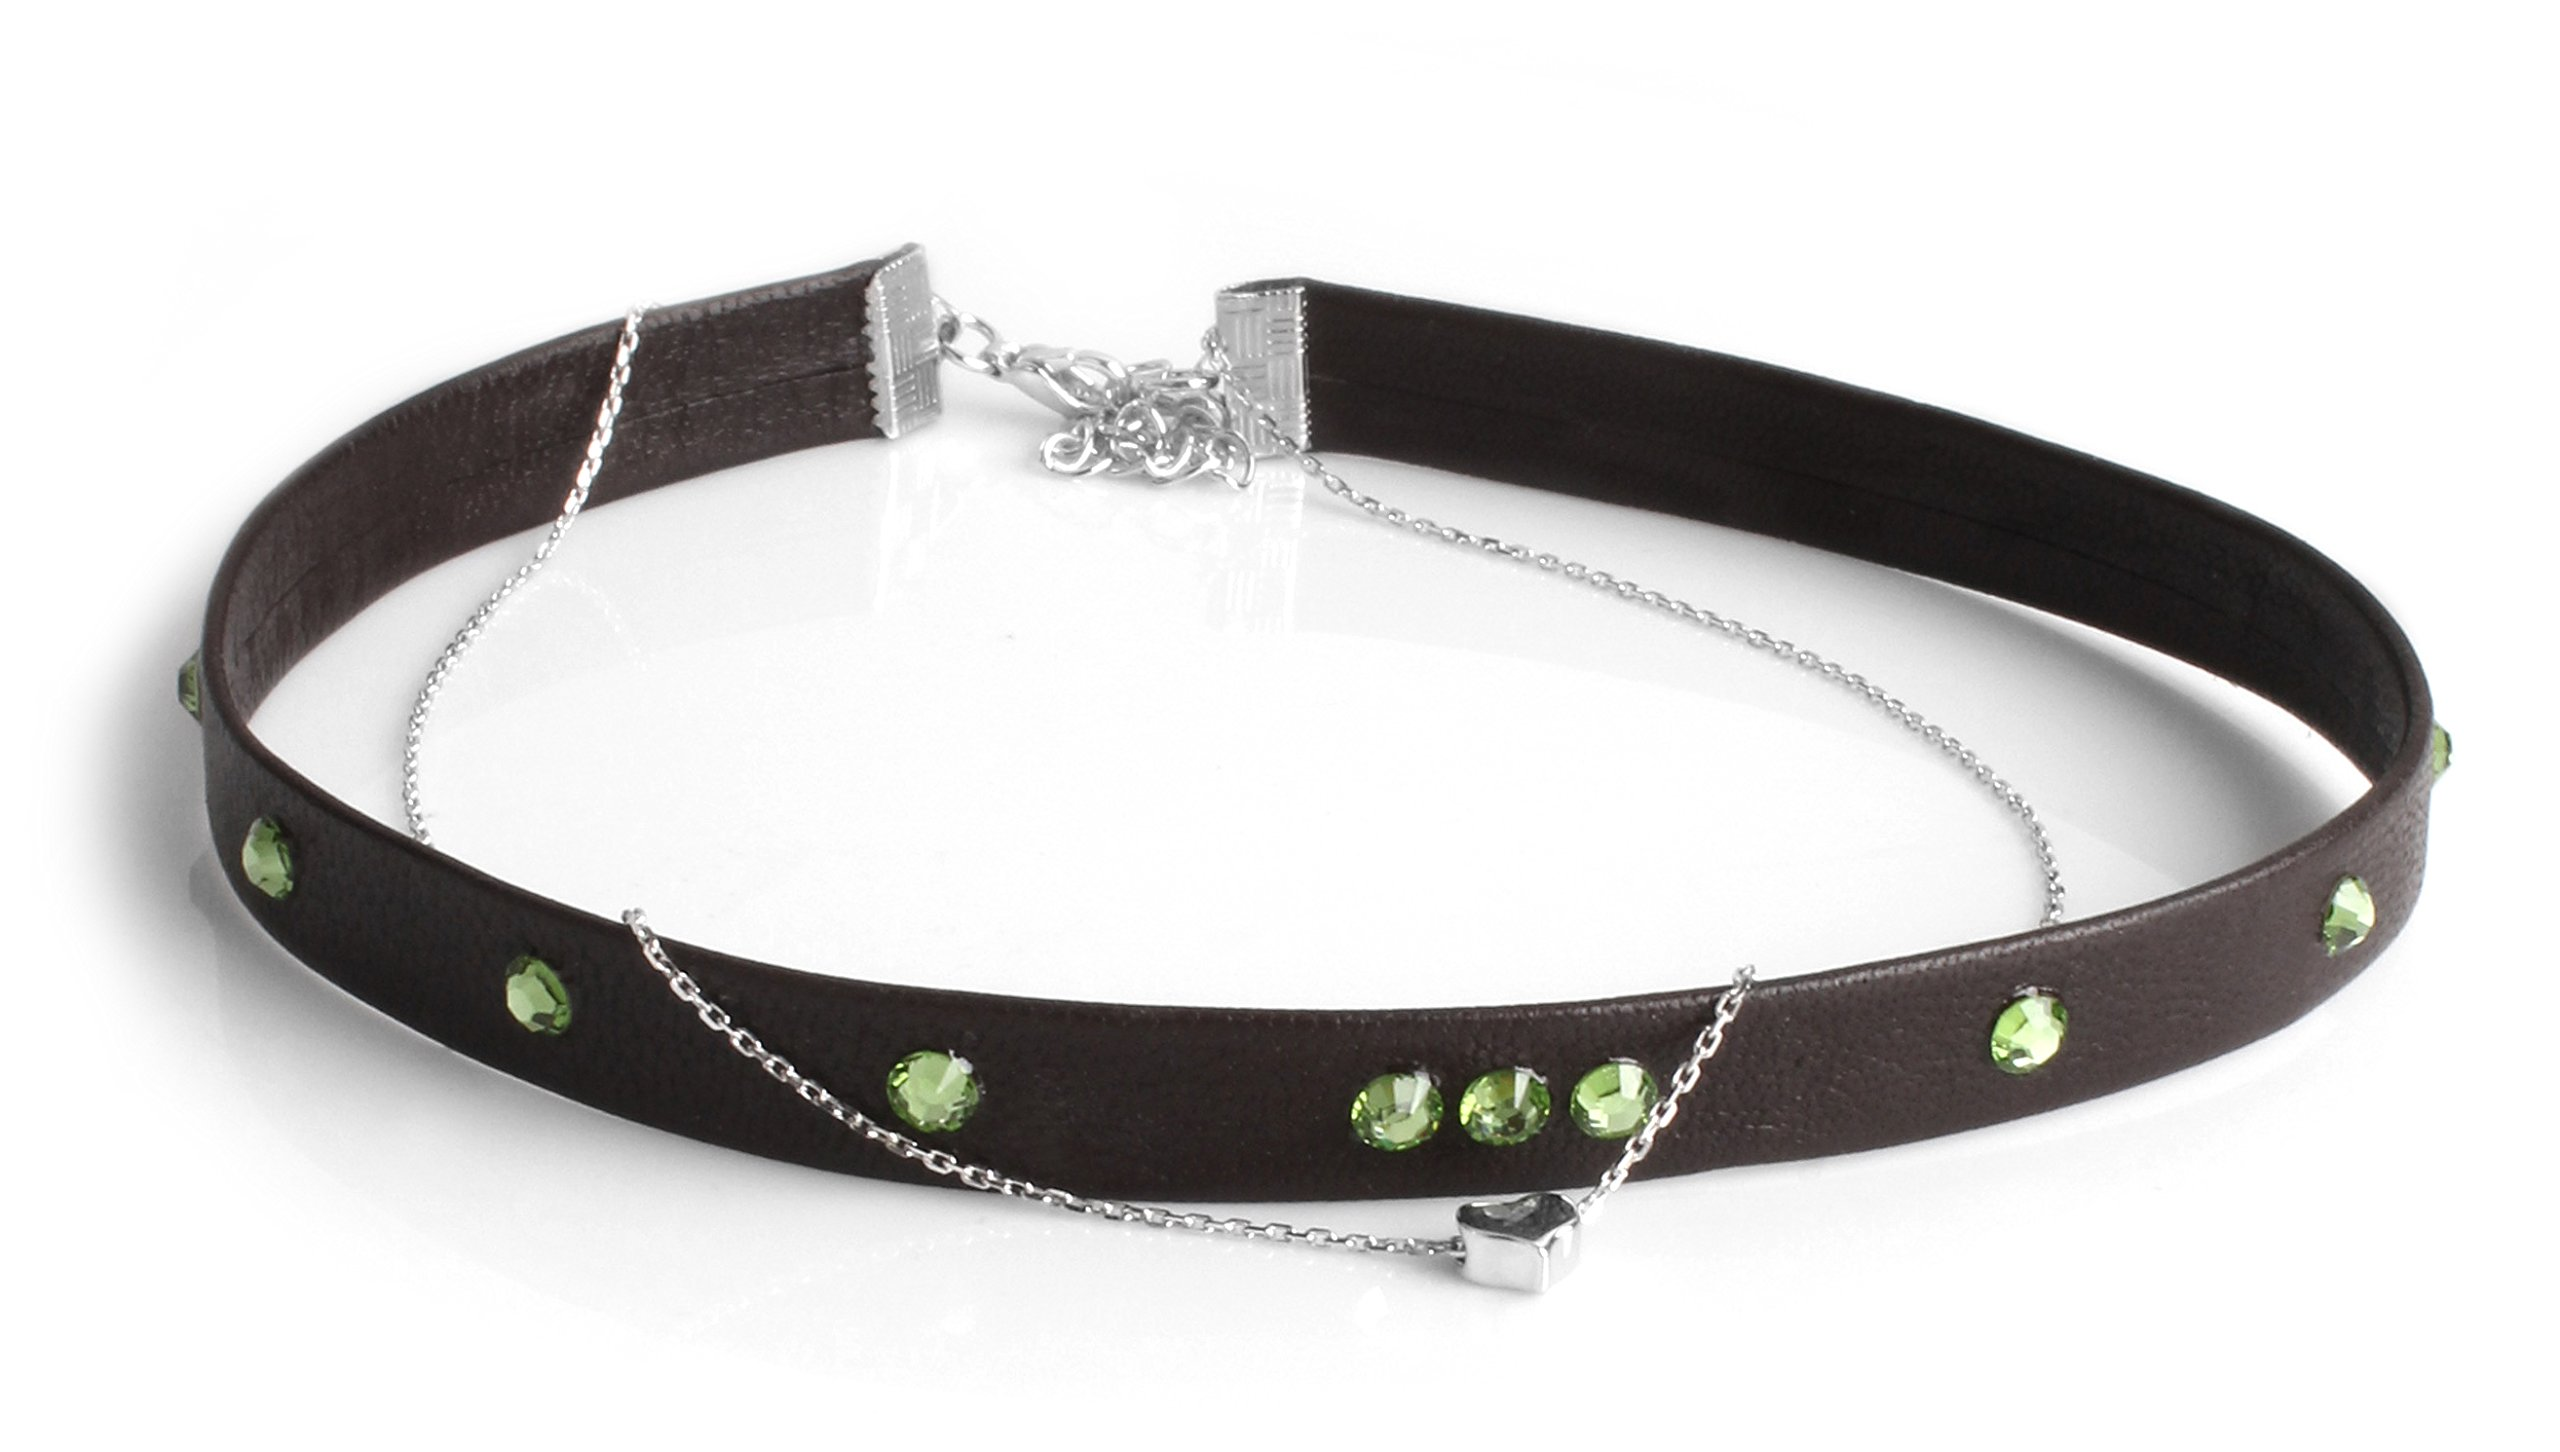 Necklace Choker Swarovski Genuine Leather Silver 2Line Find Your Size CéK NC3316 (14 Inches)